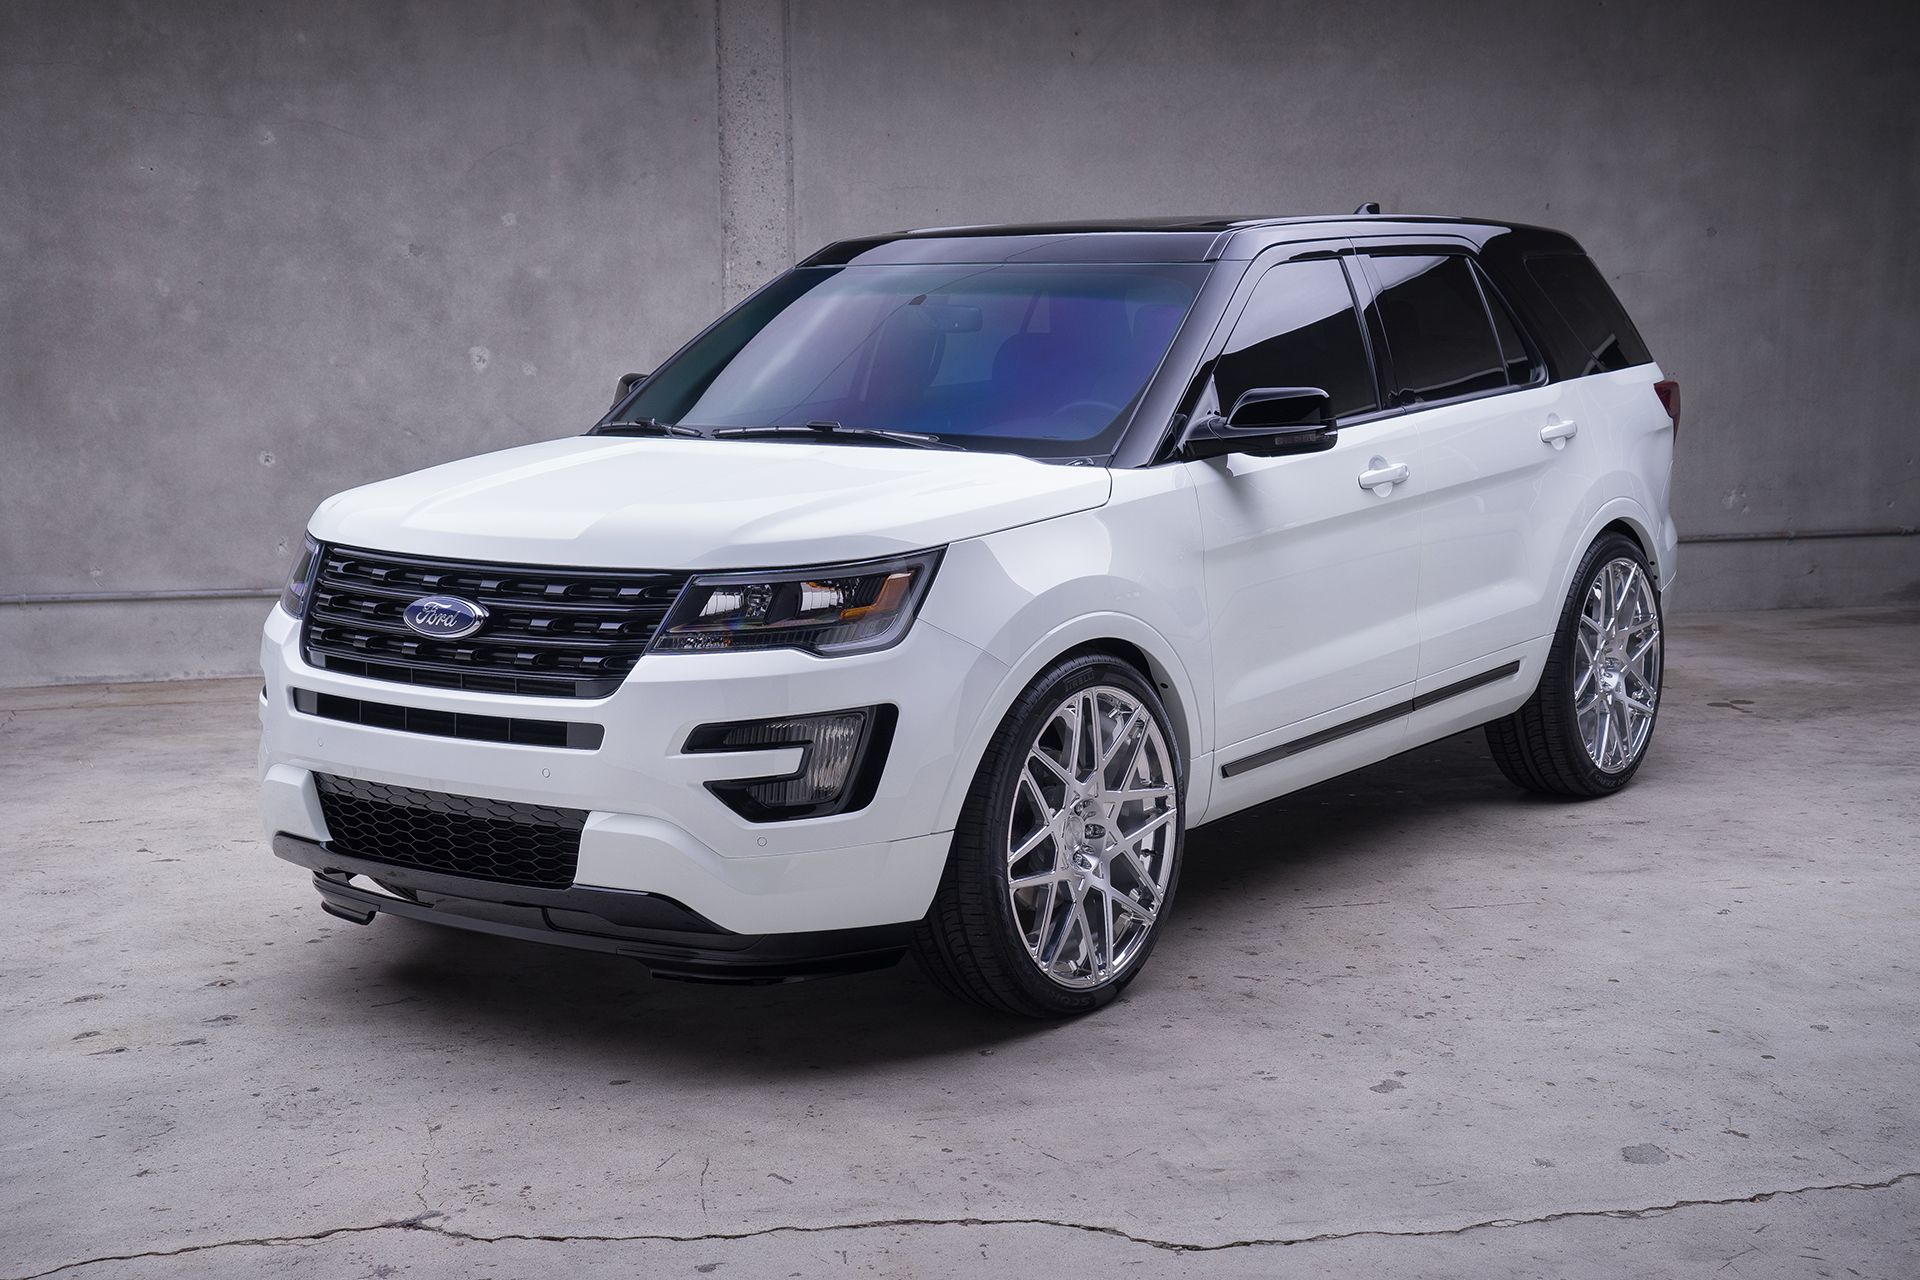 Ford explorer models and cars on pinterest